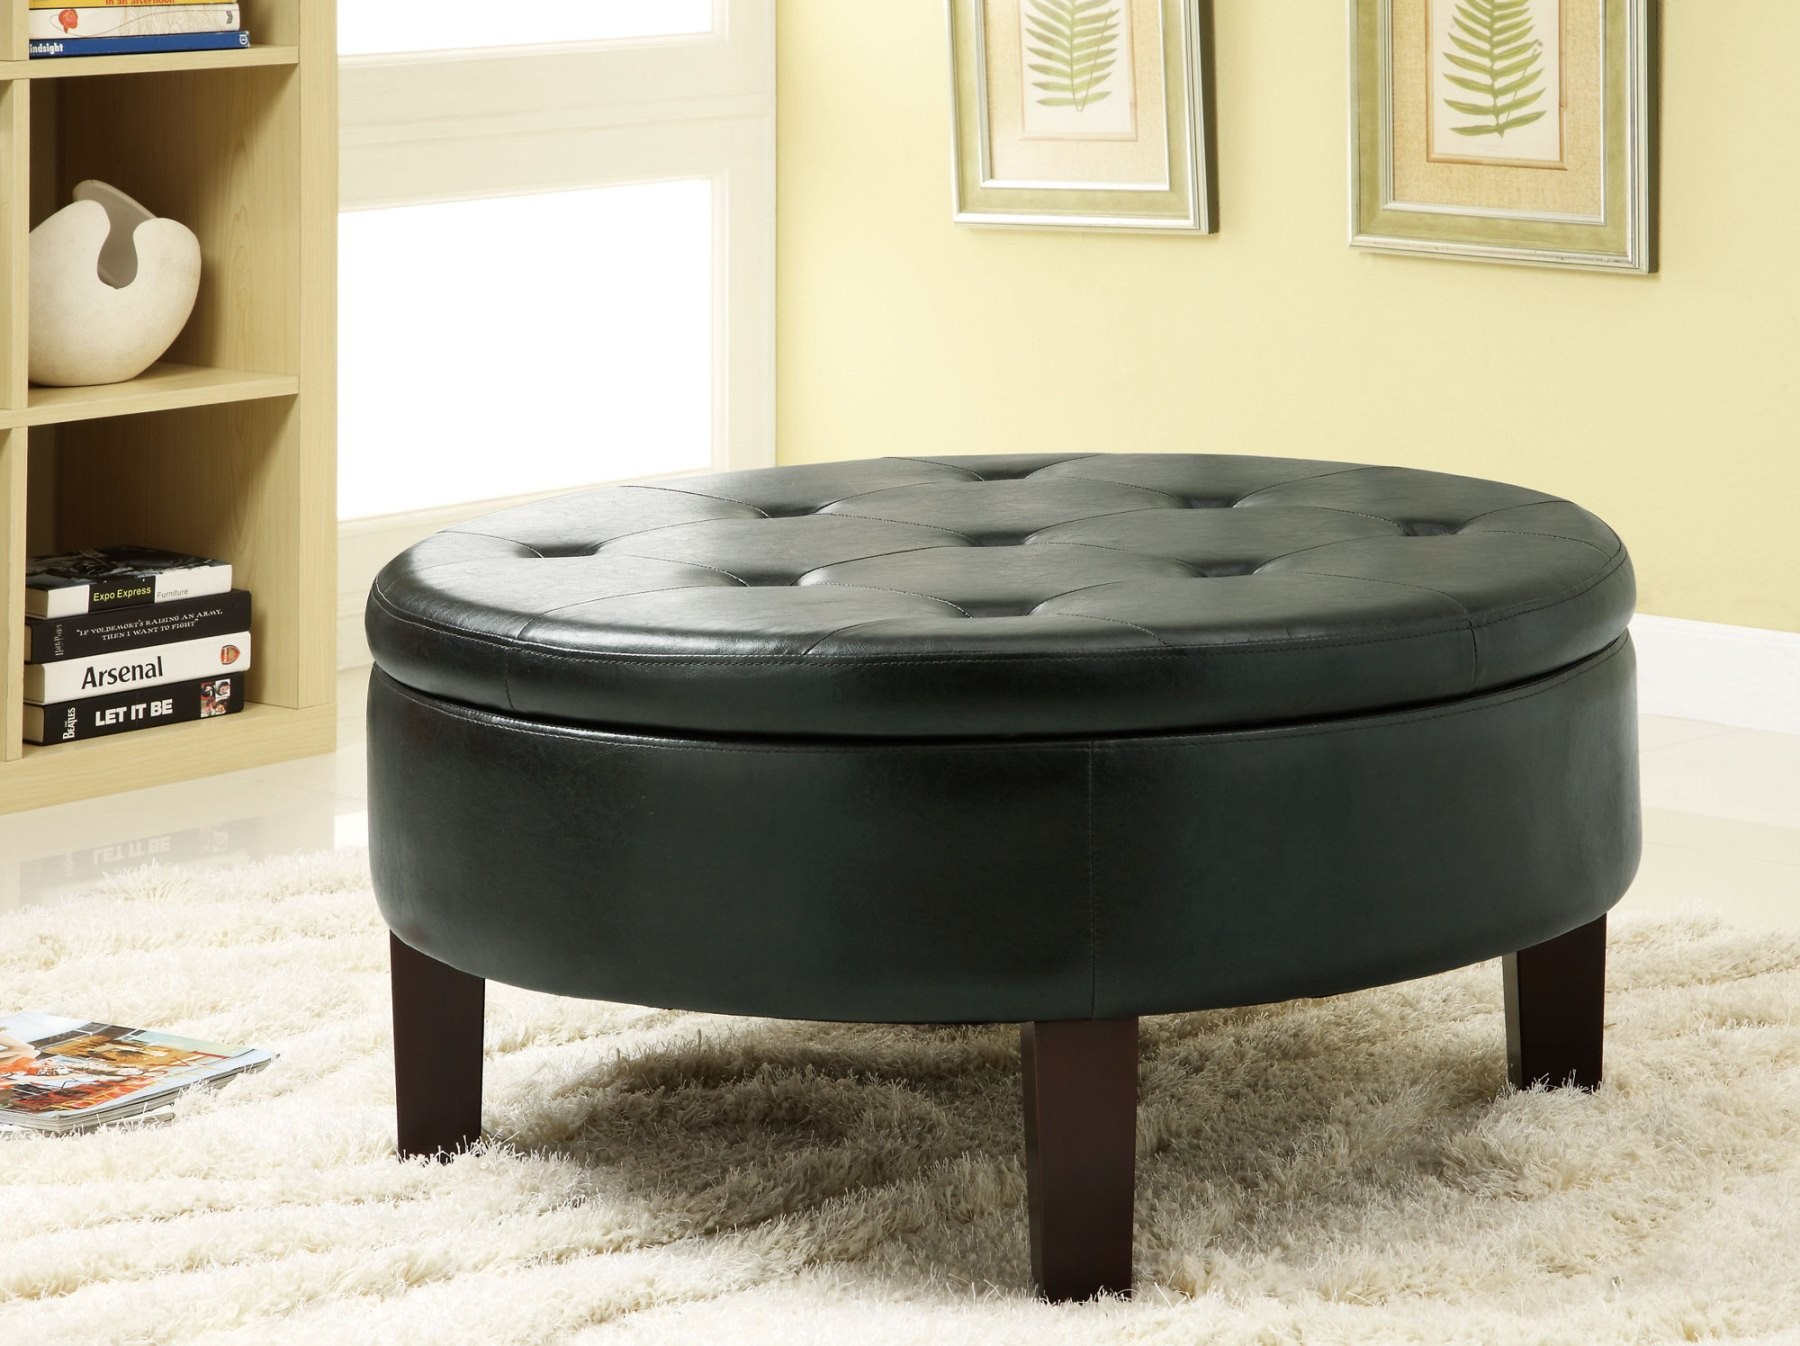 Round Storage Ottoman Coffee Table Round Padded Coffee Table Upholstered Coffee Tables Ottomans (Image 9 of 10)